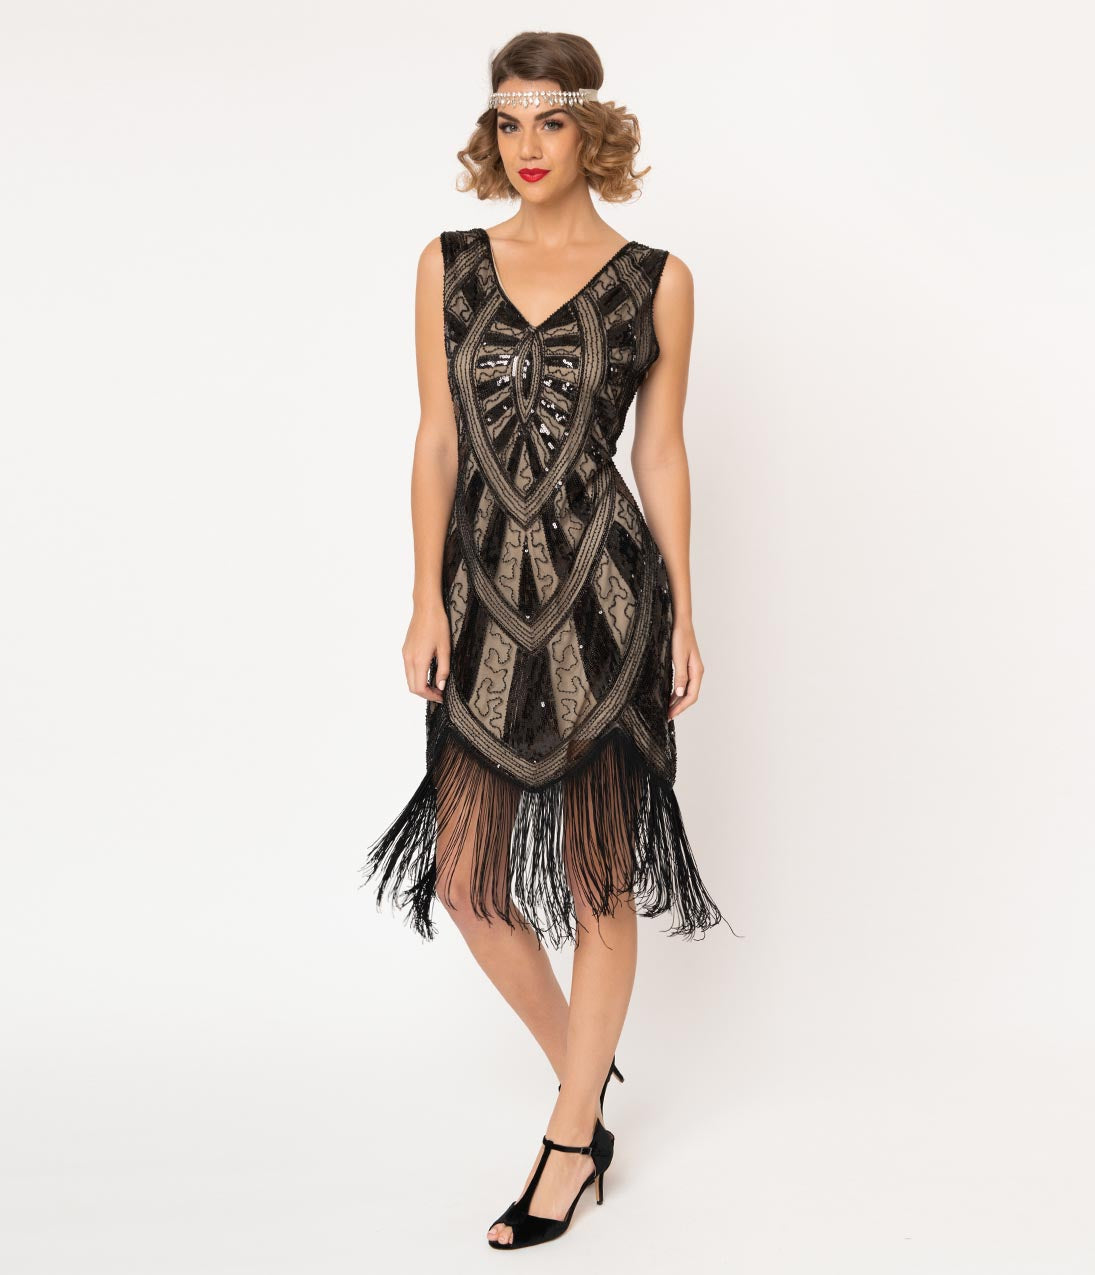 Great Gatsby Dress – Great Gatsby Dresses for Sale Unique Vintage 1920S Black  Beige Beaded Fringe Magdeleine Flapper Dress $98.00 AT vintagedancer.com